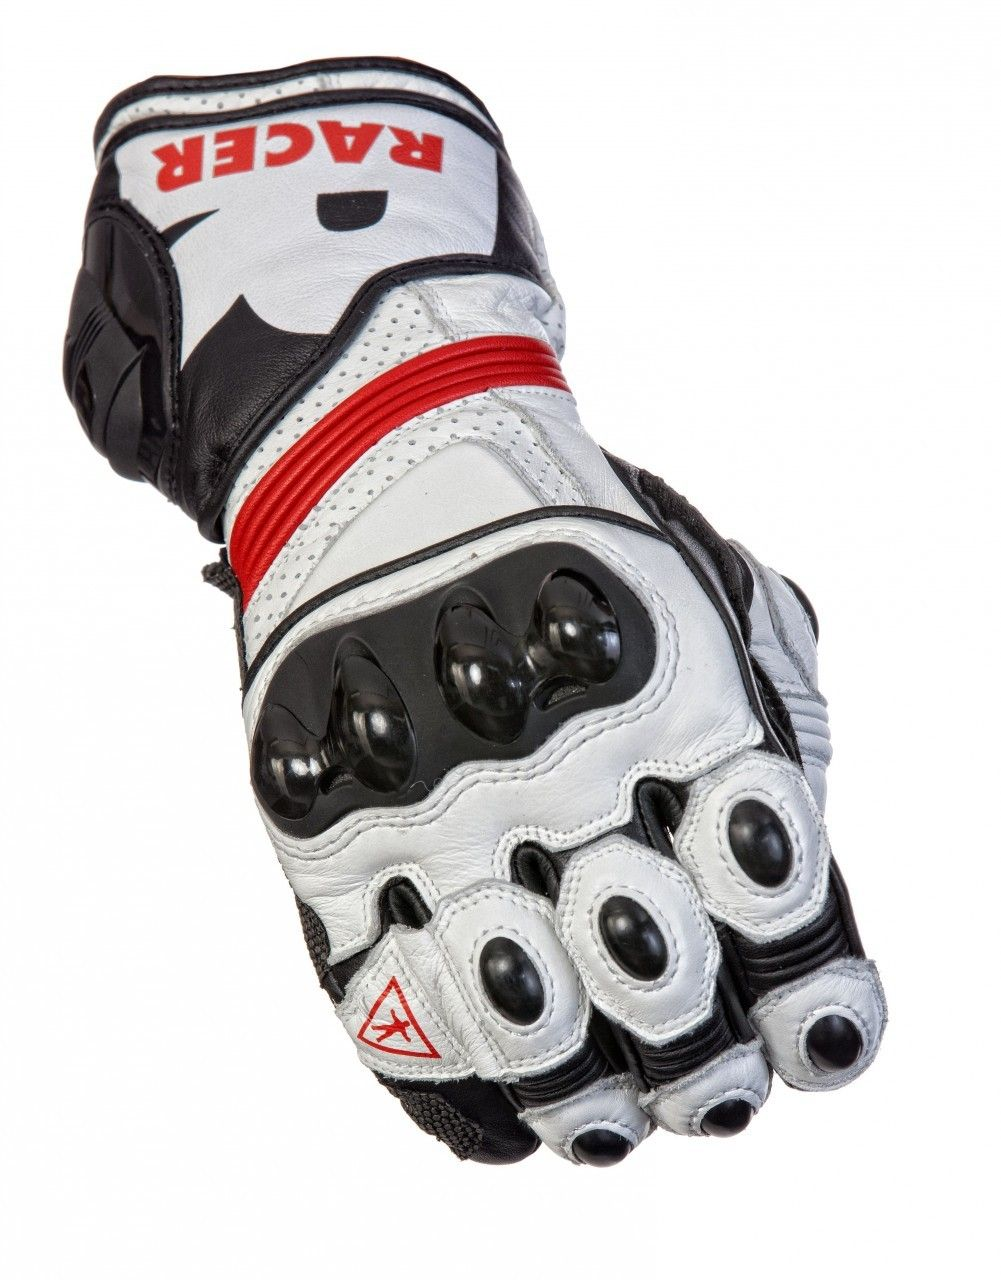 Motorcycle gloves palm protection - Lame Name Amazing Gloves Fit Better Palm Protectionsuperior